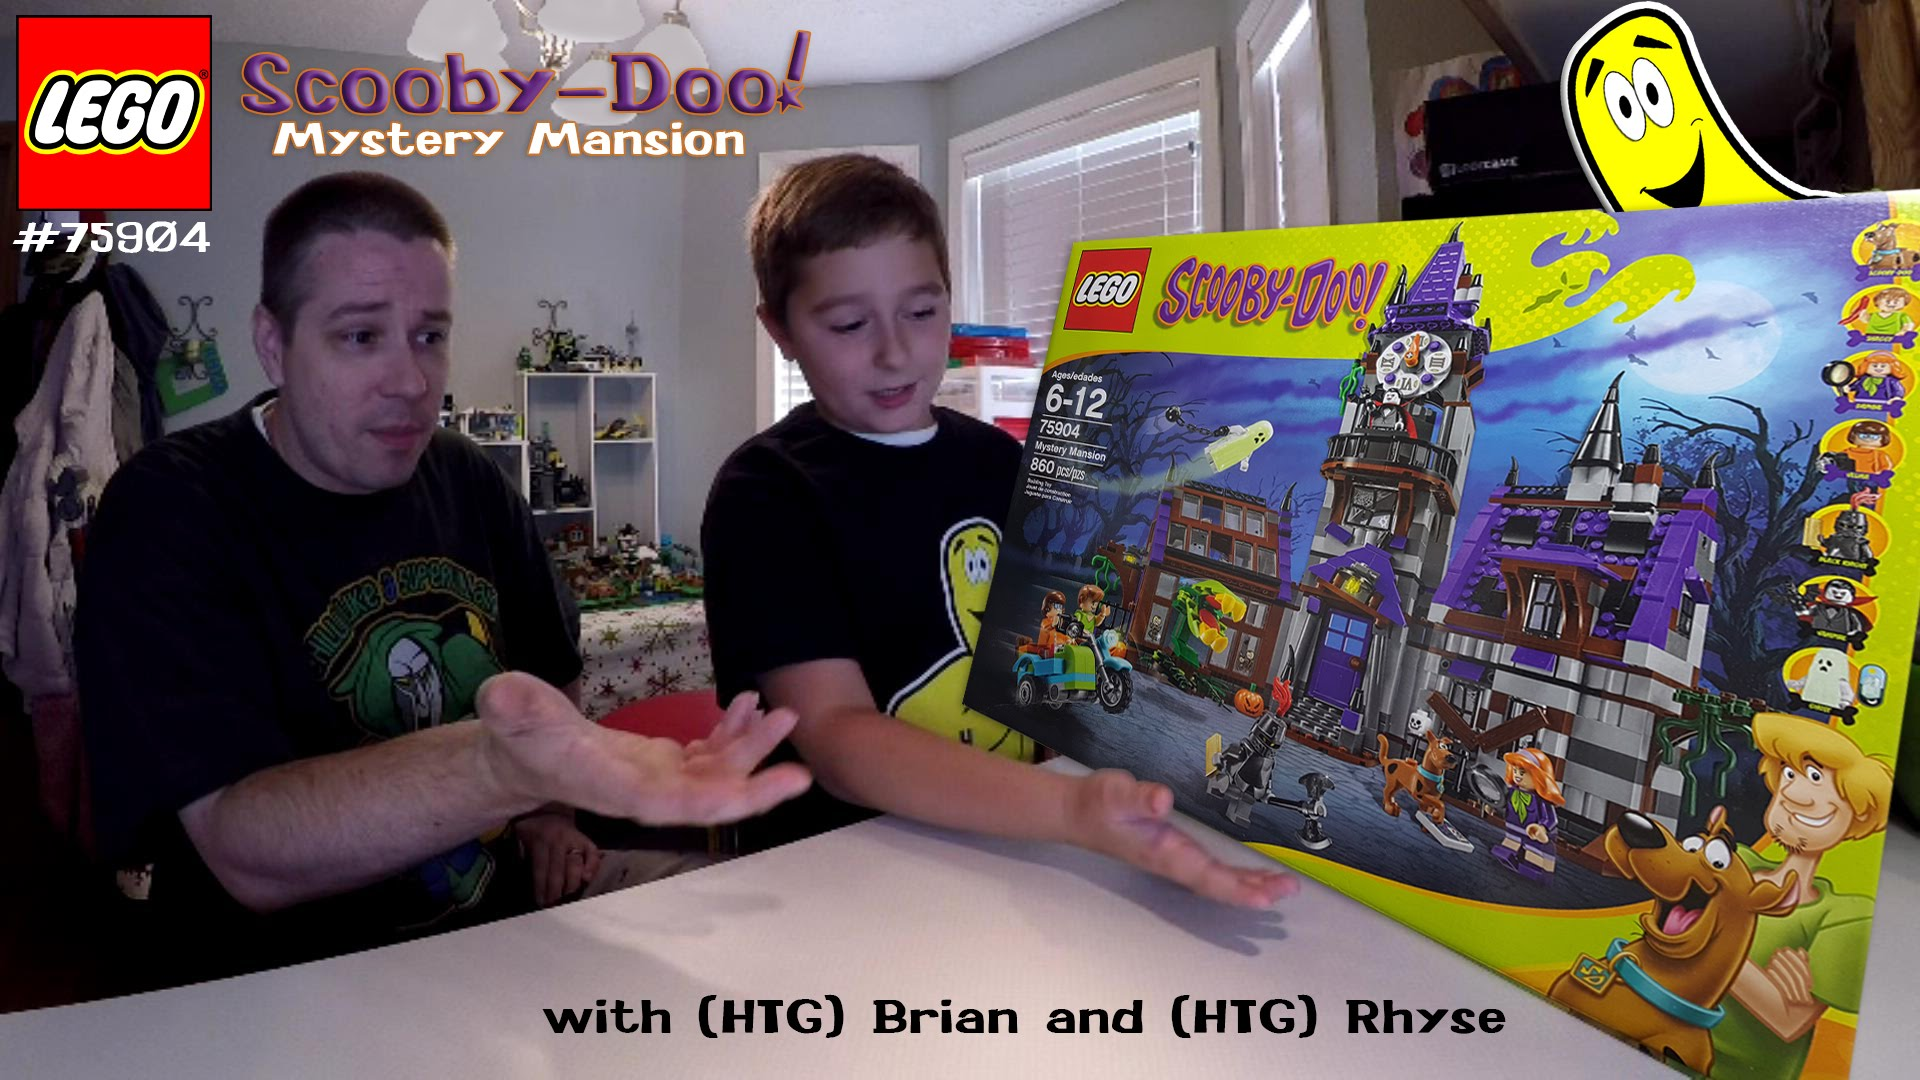 LEGO Speed Build: Scooby-Doo Mystery Mansion #75904 with Brian and Rhyse – HTG